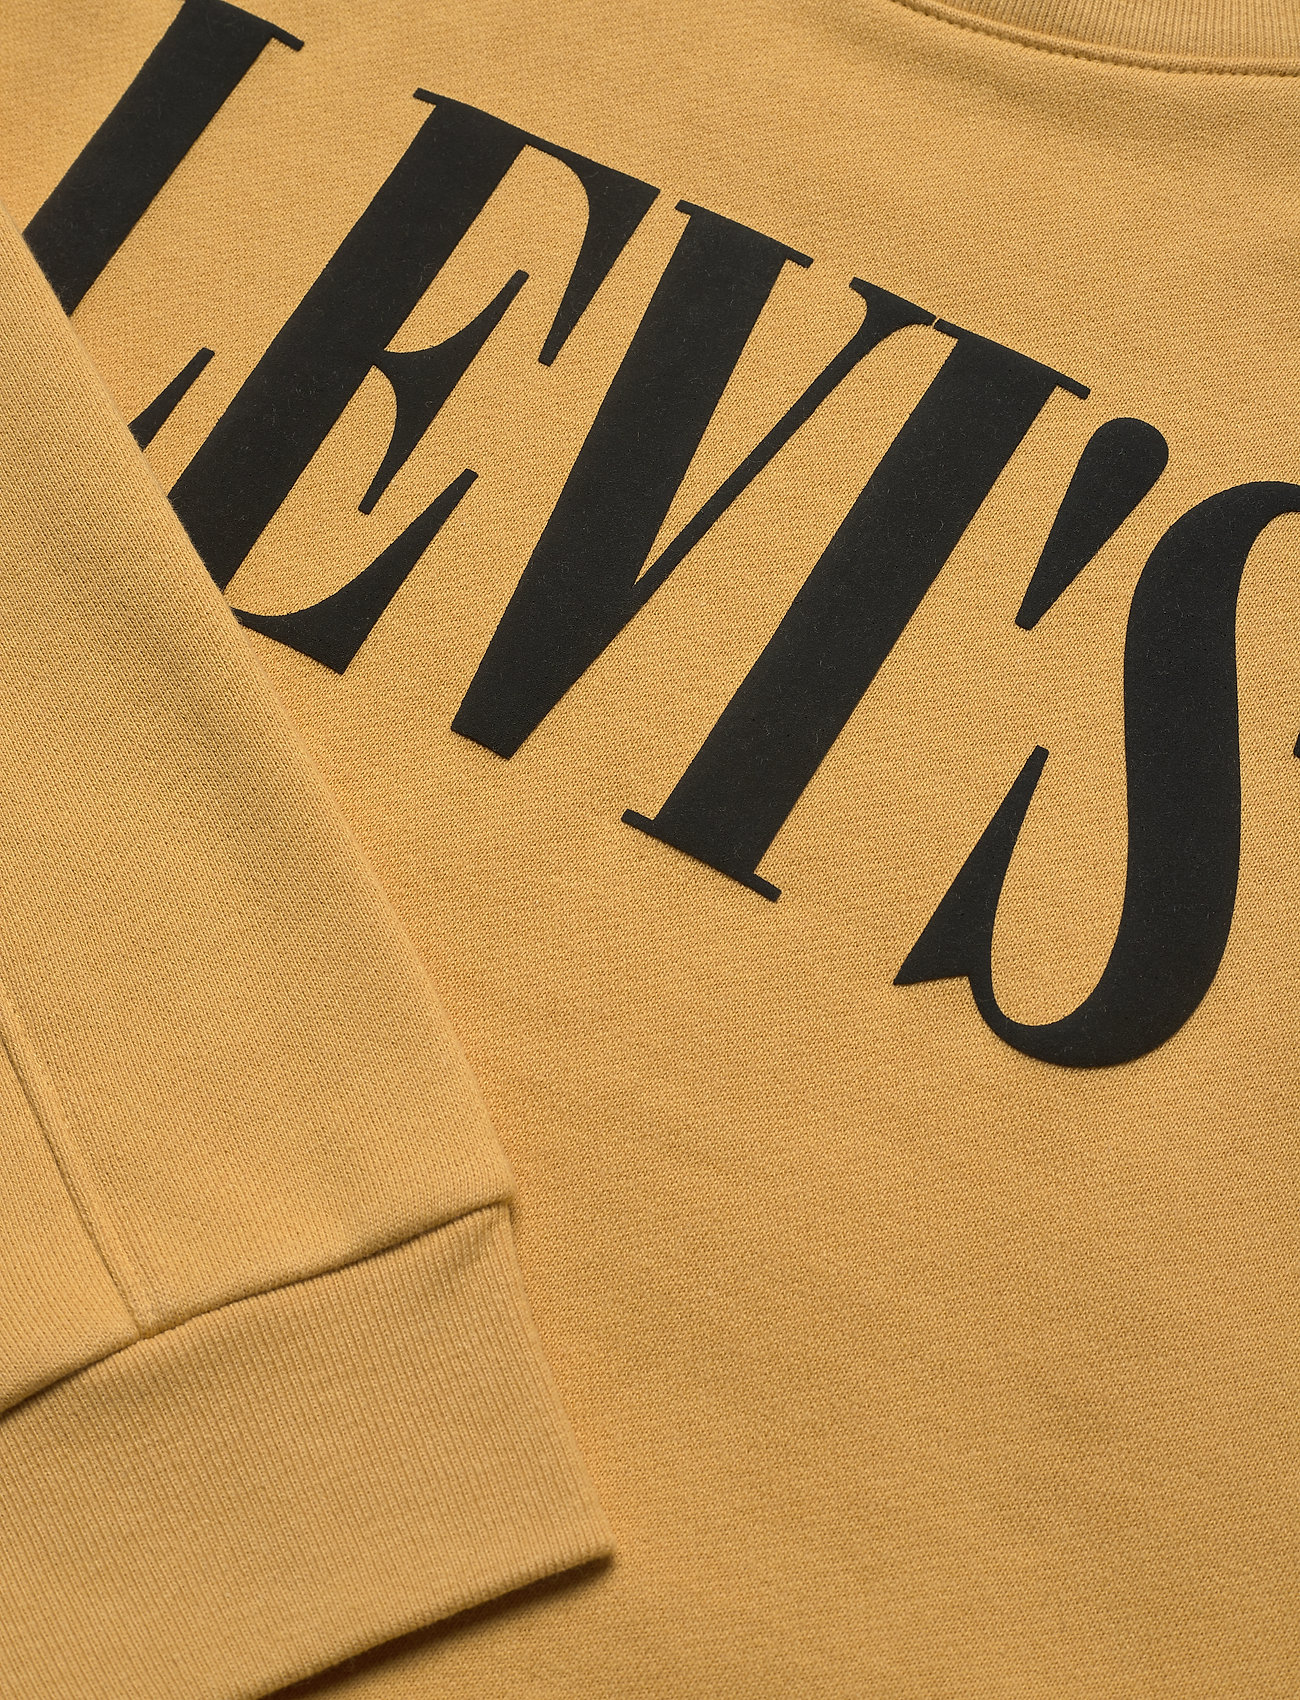 LEVI´S Women GRAPHIC DIANA CREW CREW T2 90S - Swetry YELLOWS/ORANGES - Kobiety Odzież.